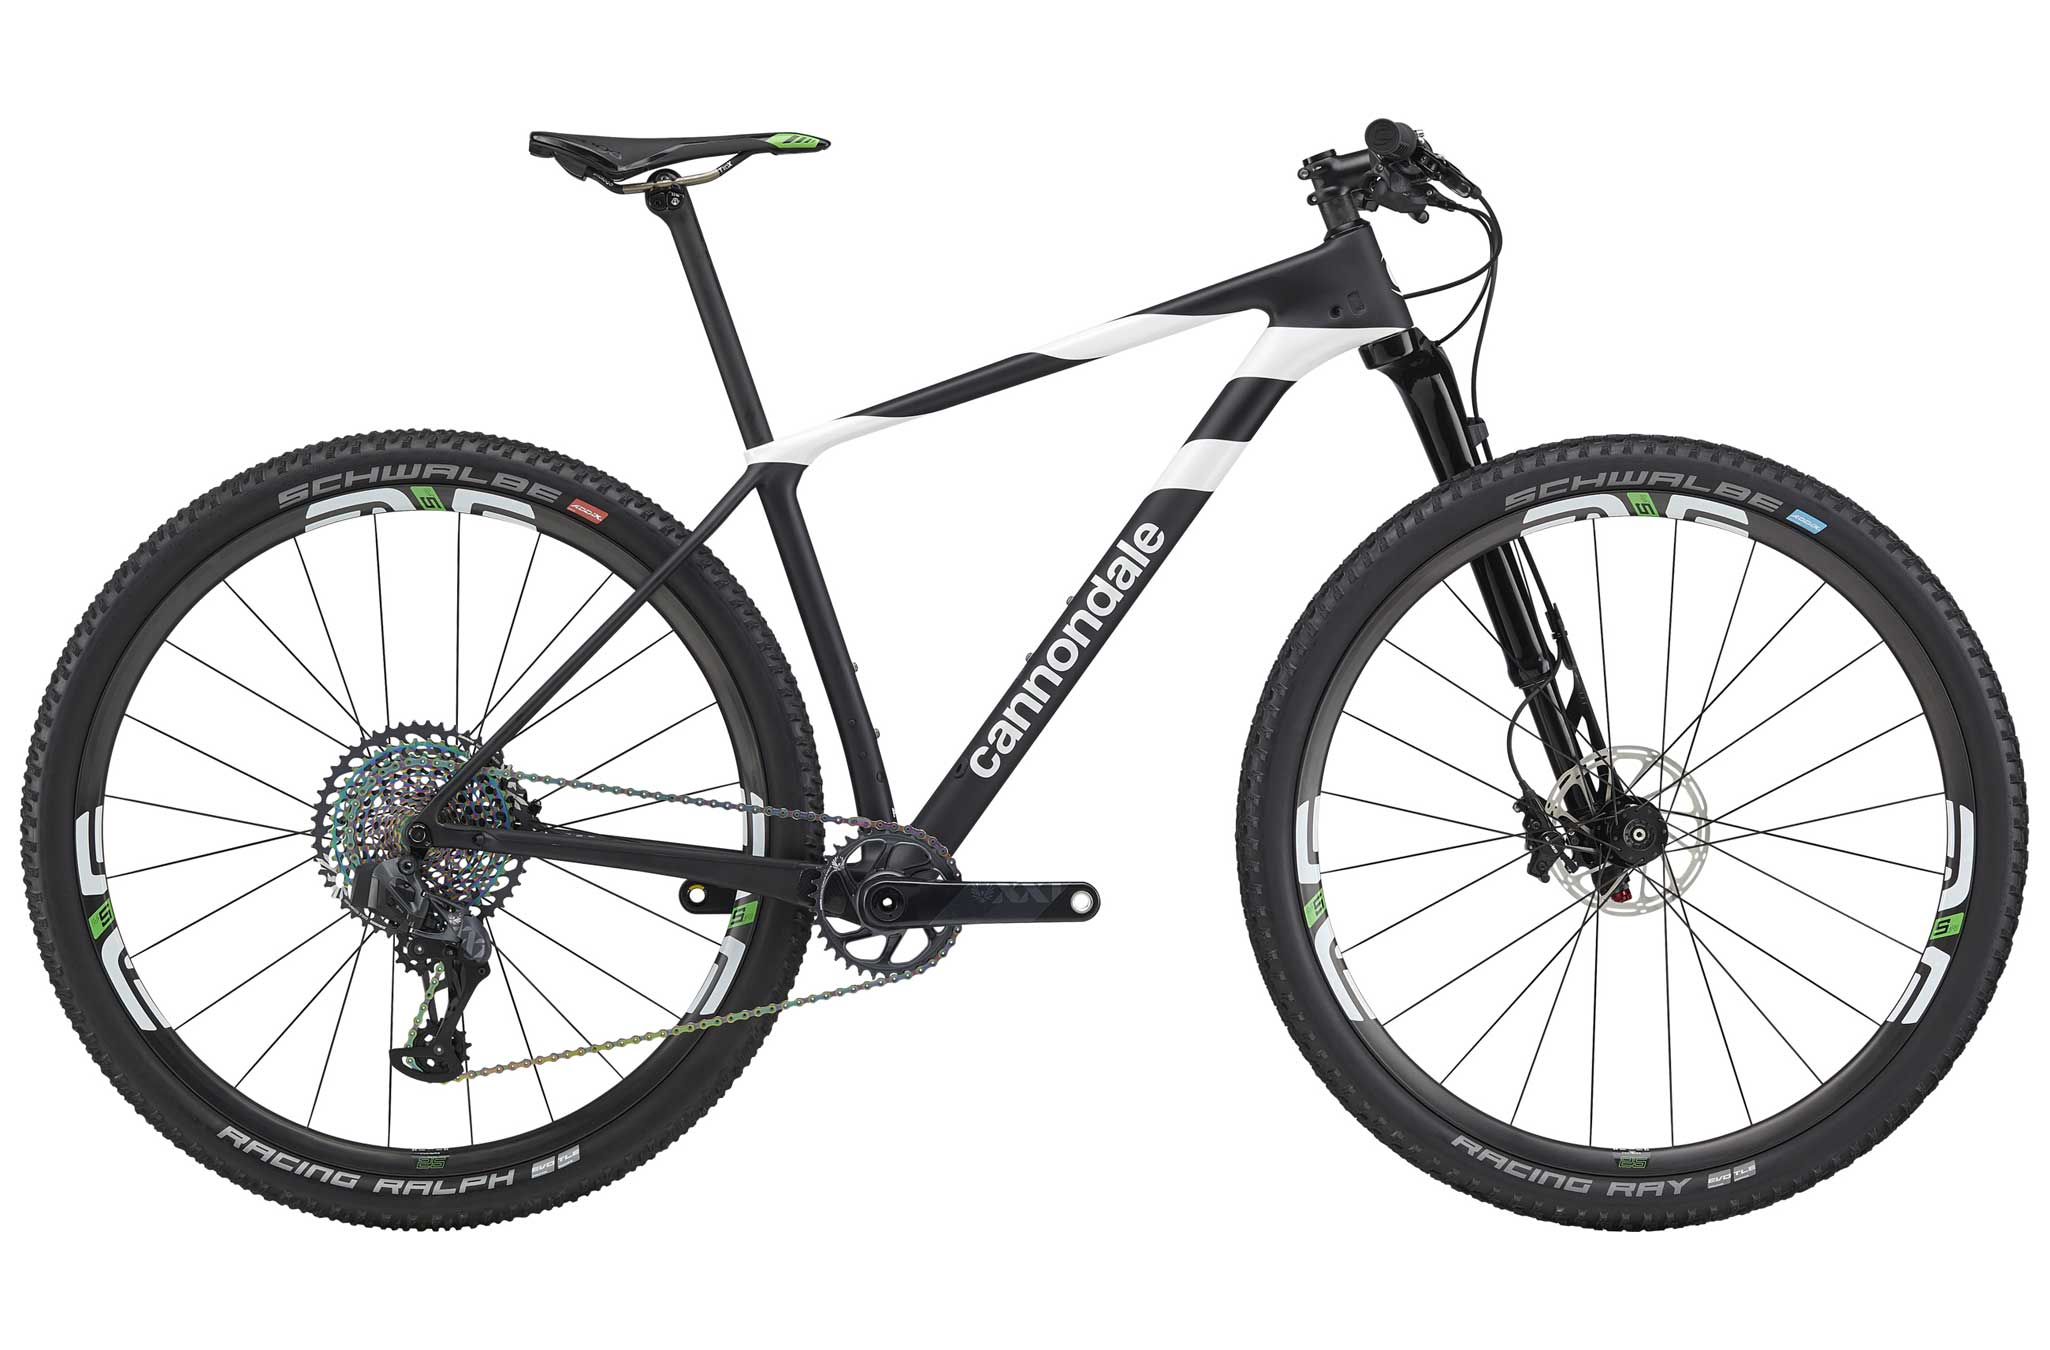 cannondale-fsi-hi-mod-world-cup-2020-mountain-bike-green-EV360845-6000-1 (1)